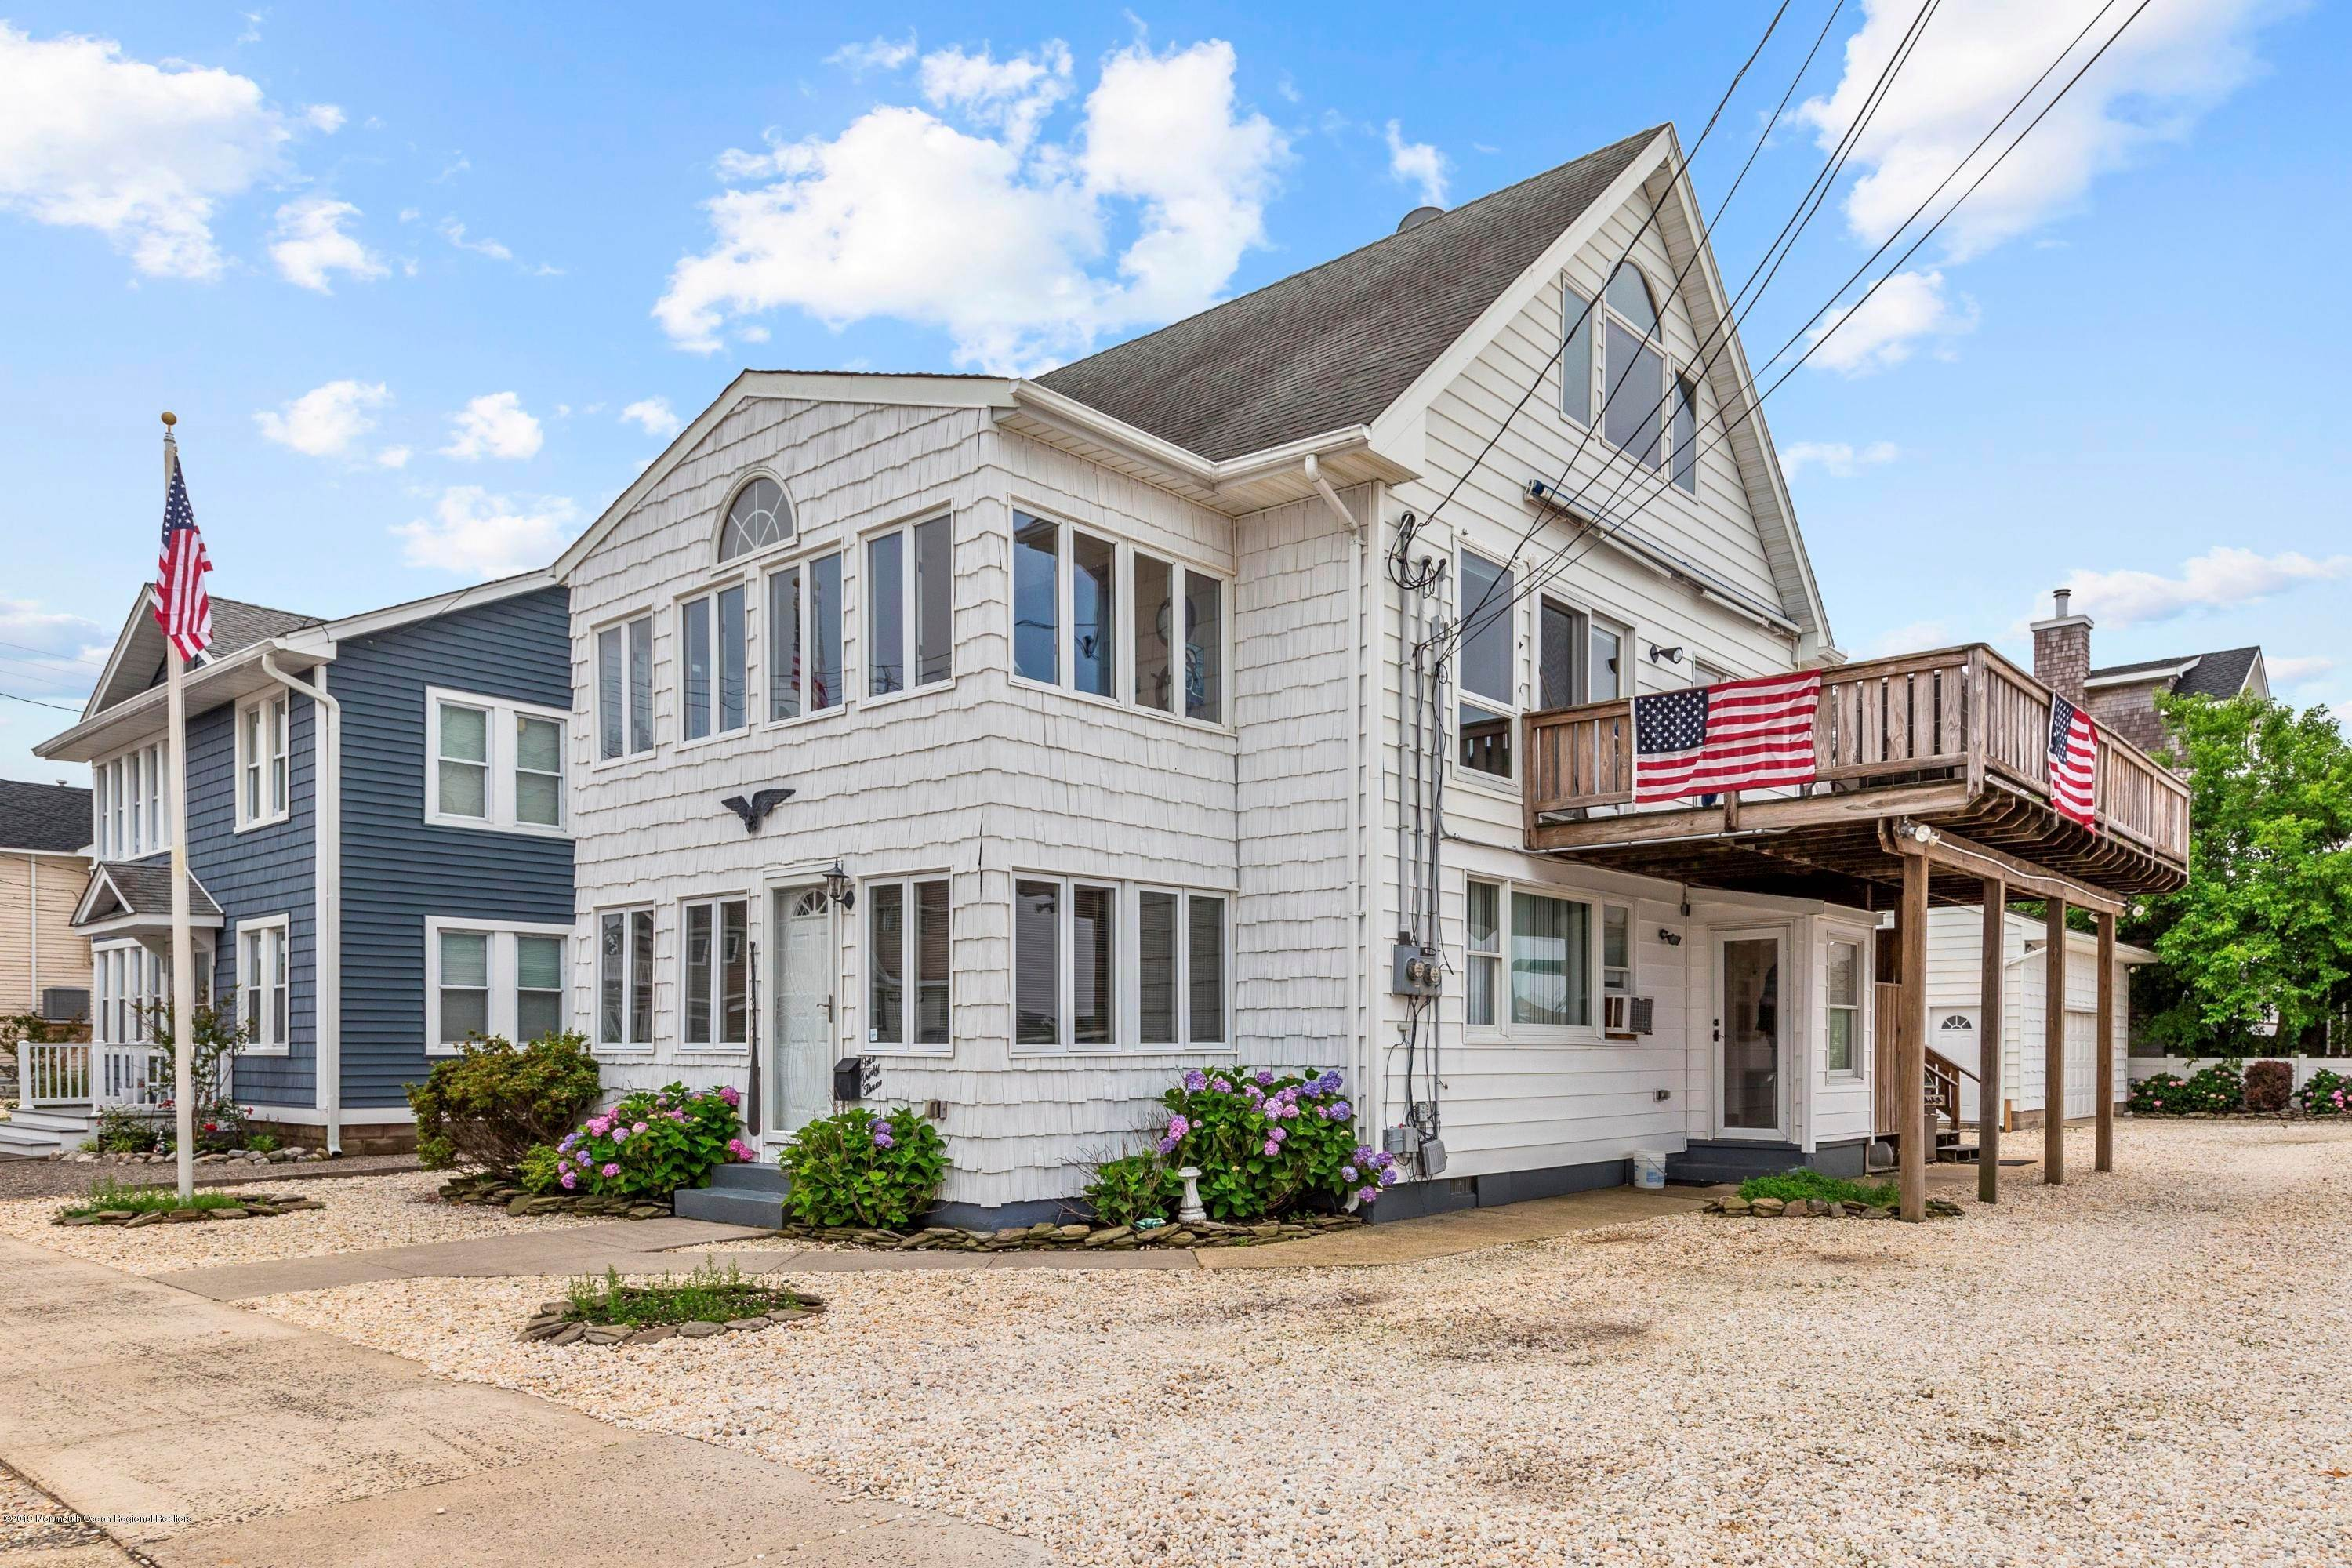 Multi-Family Homes for Sale at 133 M Street Seaside Park, New Jersey 08752 United States